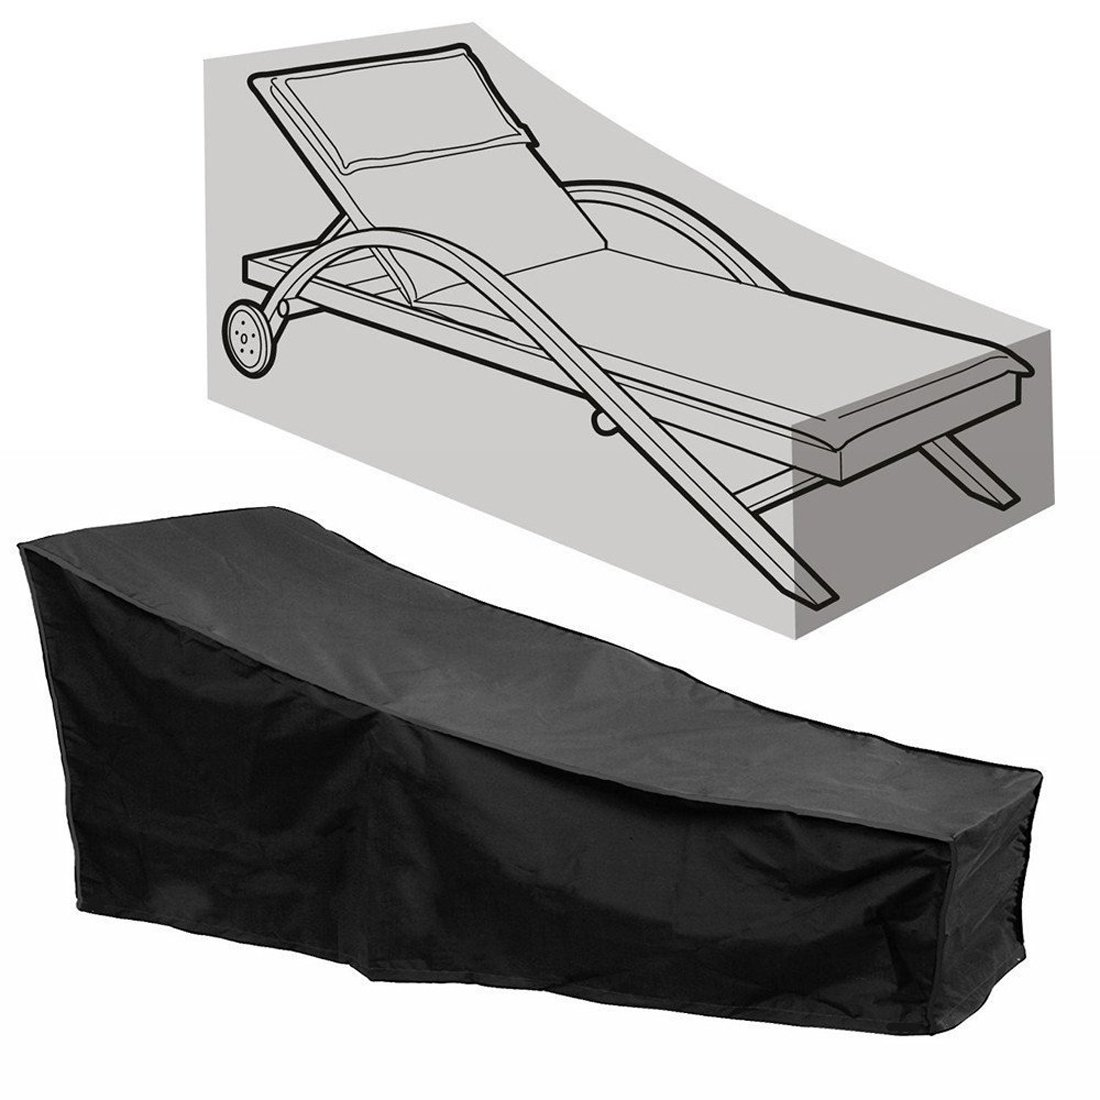 Comfysail Sun Lounger Cover Waterproof Sunbed Cover Outdoor Garden Patio Furniture with a Storage Bag,Black,2087641/79cm